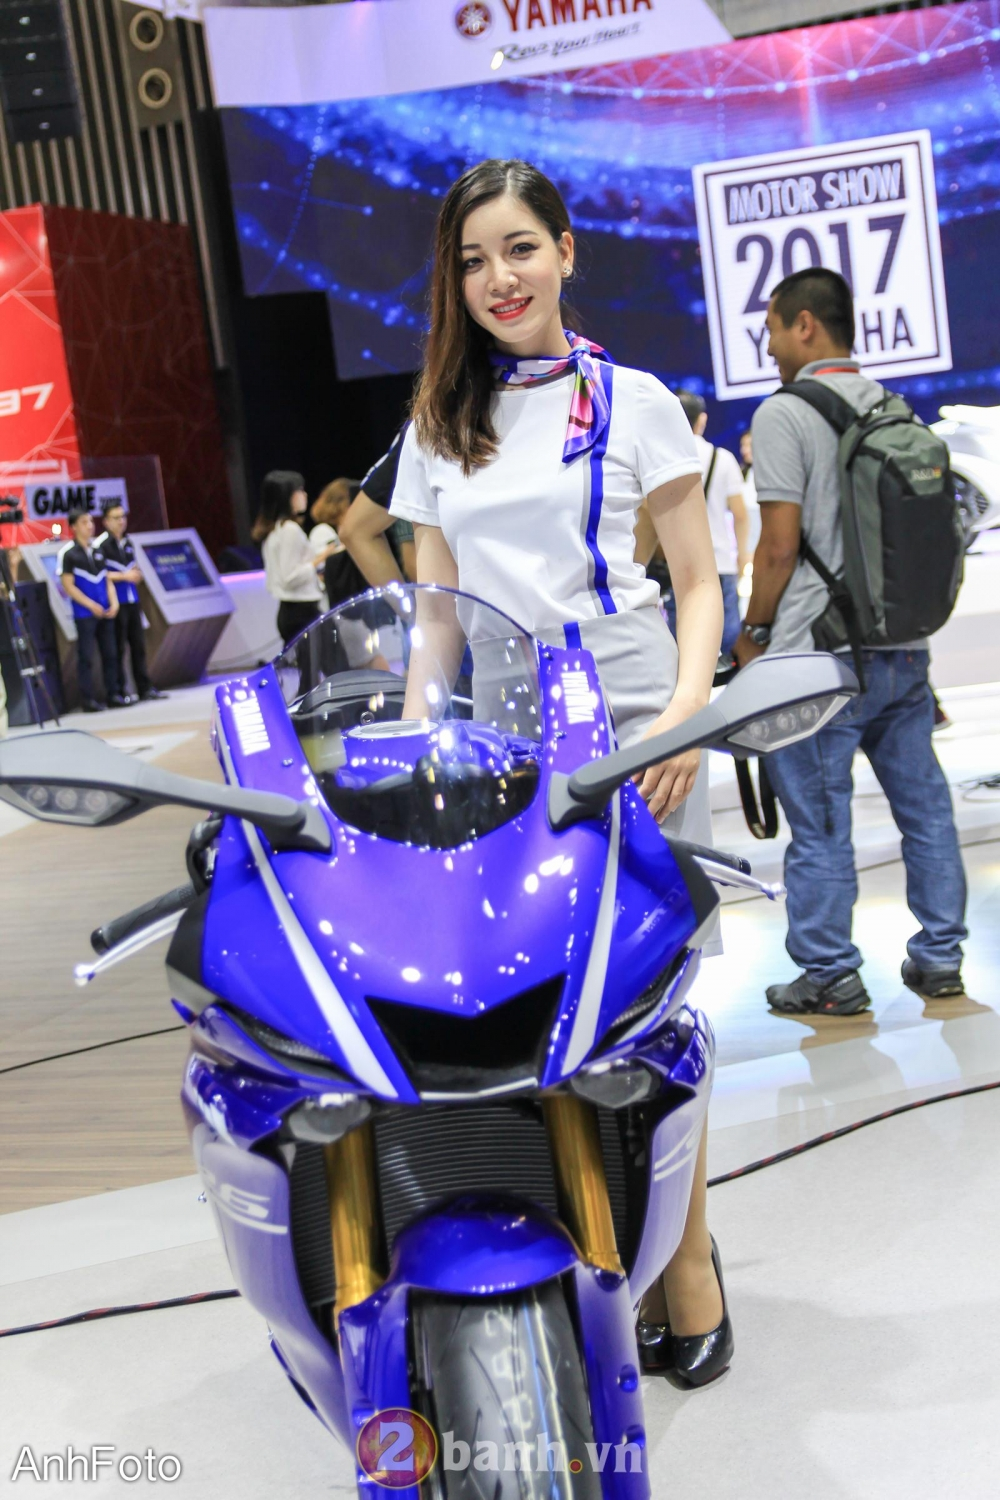 50 co gai hot nhat VietNam Motorcycle Show 2017 - 12